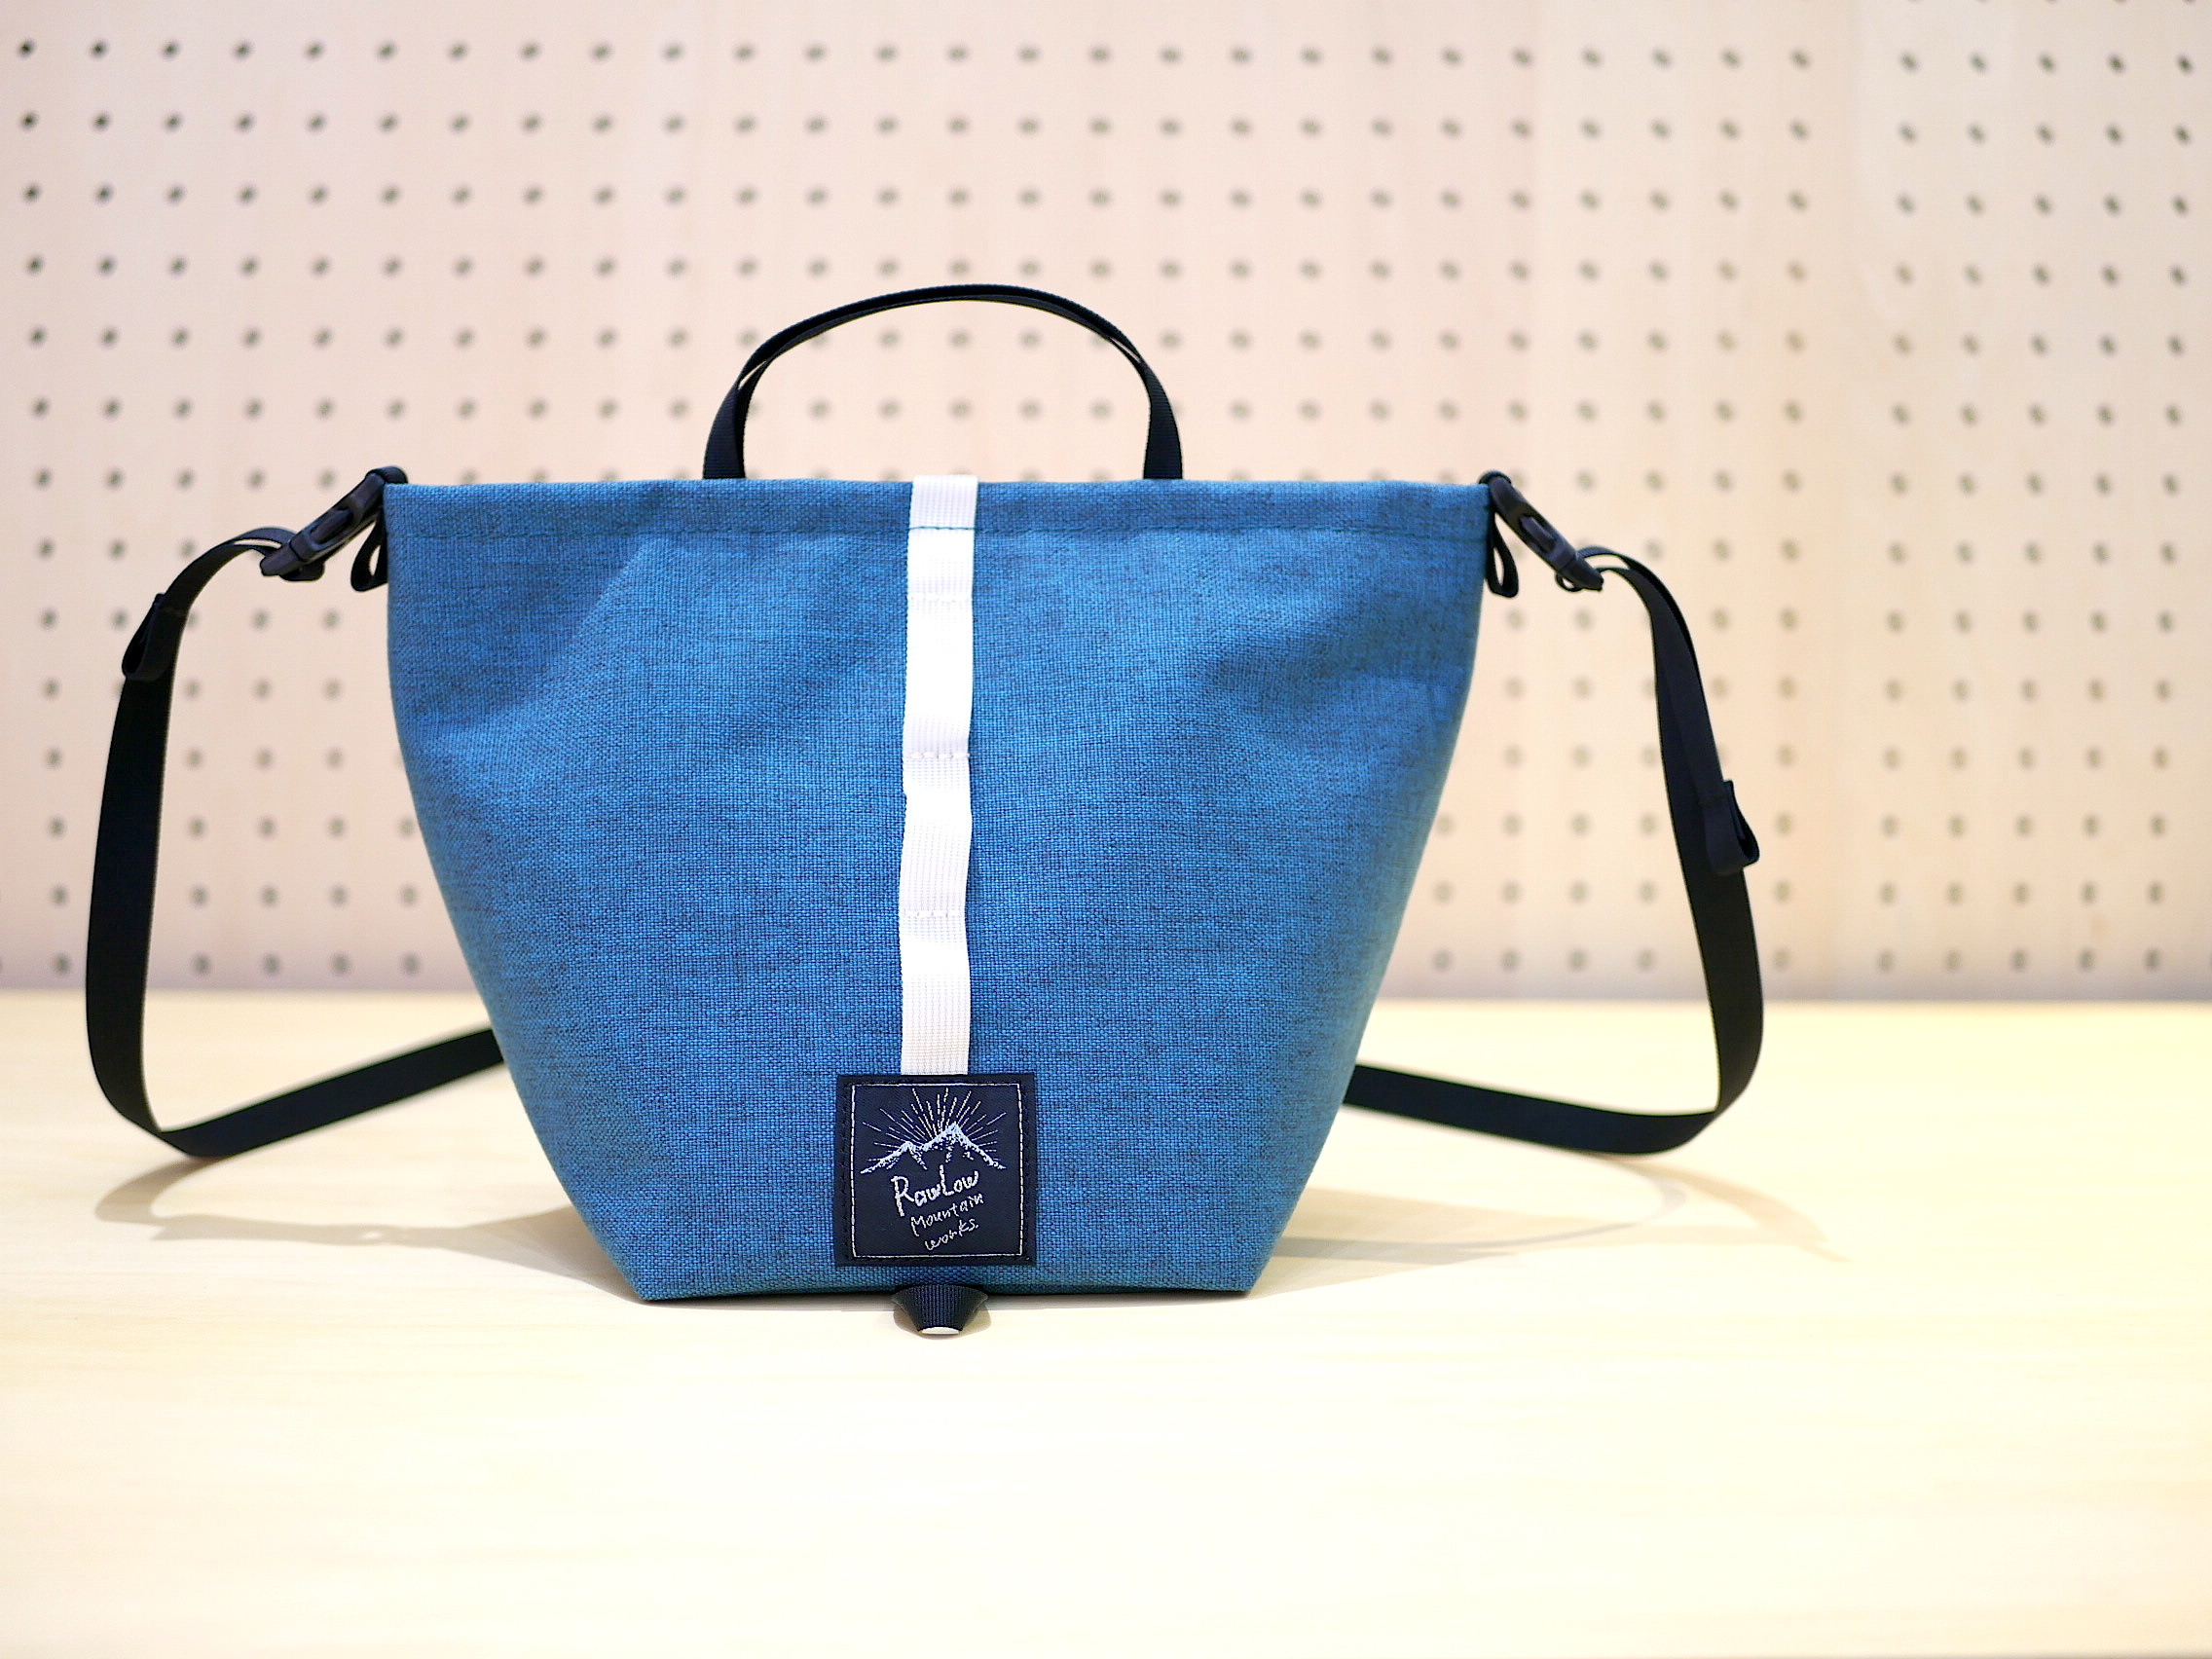 RAWLOW MOUNTAIN WORKS / TABITIBI TOTE(TURQUOISE BLUE)